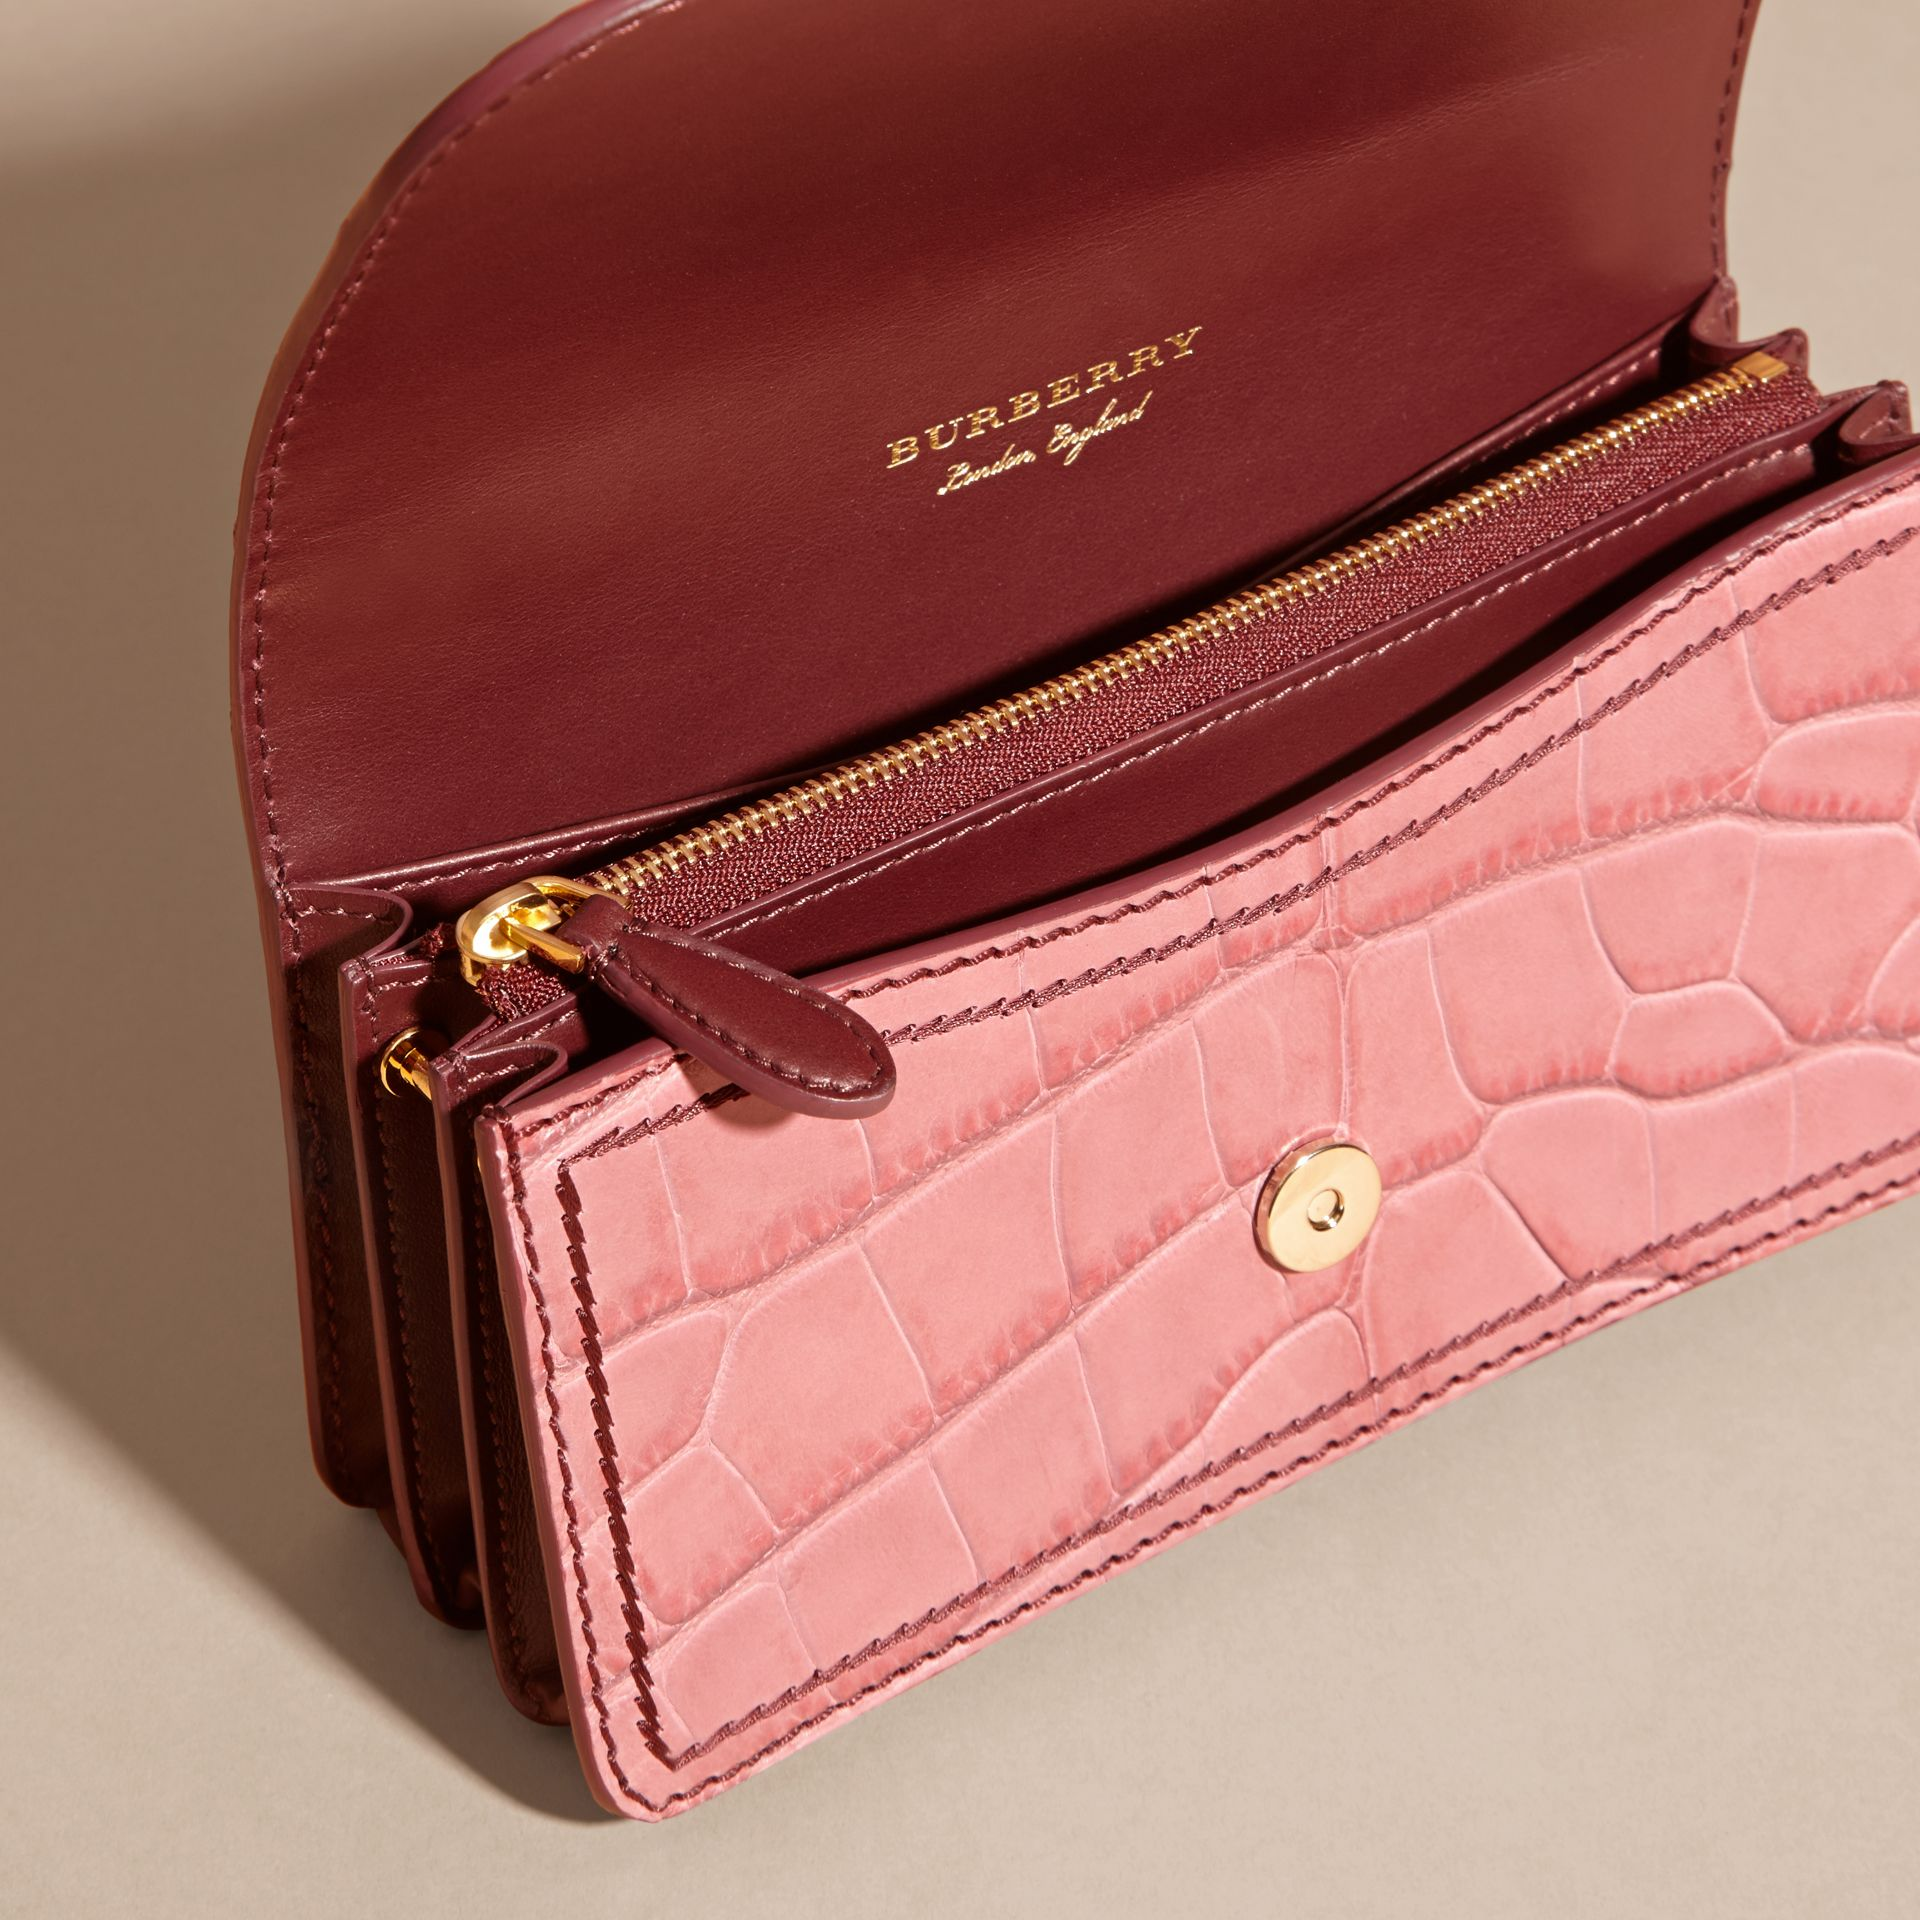 The Small Buckle Bag in Alligator and Leather in Dusky Pink/ Burgundy - Women | Burberry Australia - gallery image 6